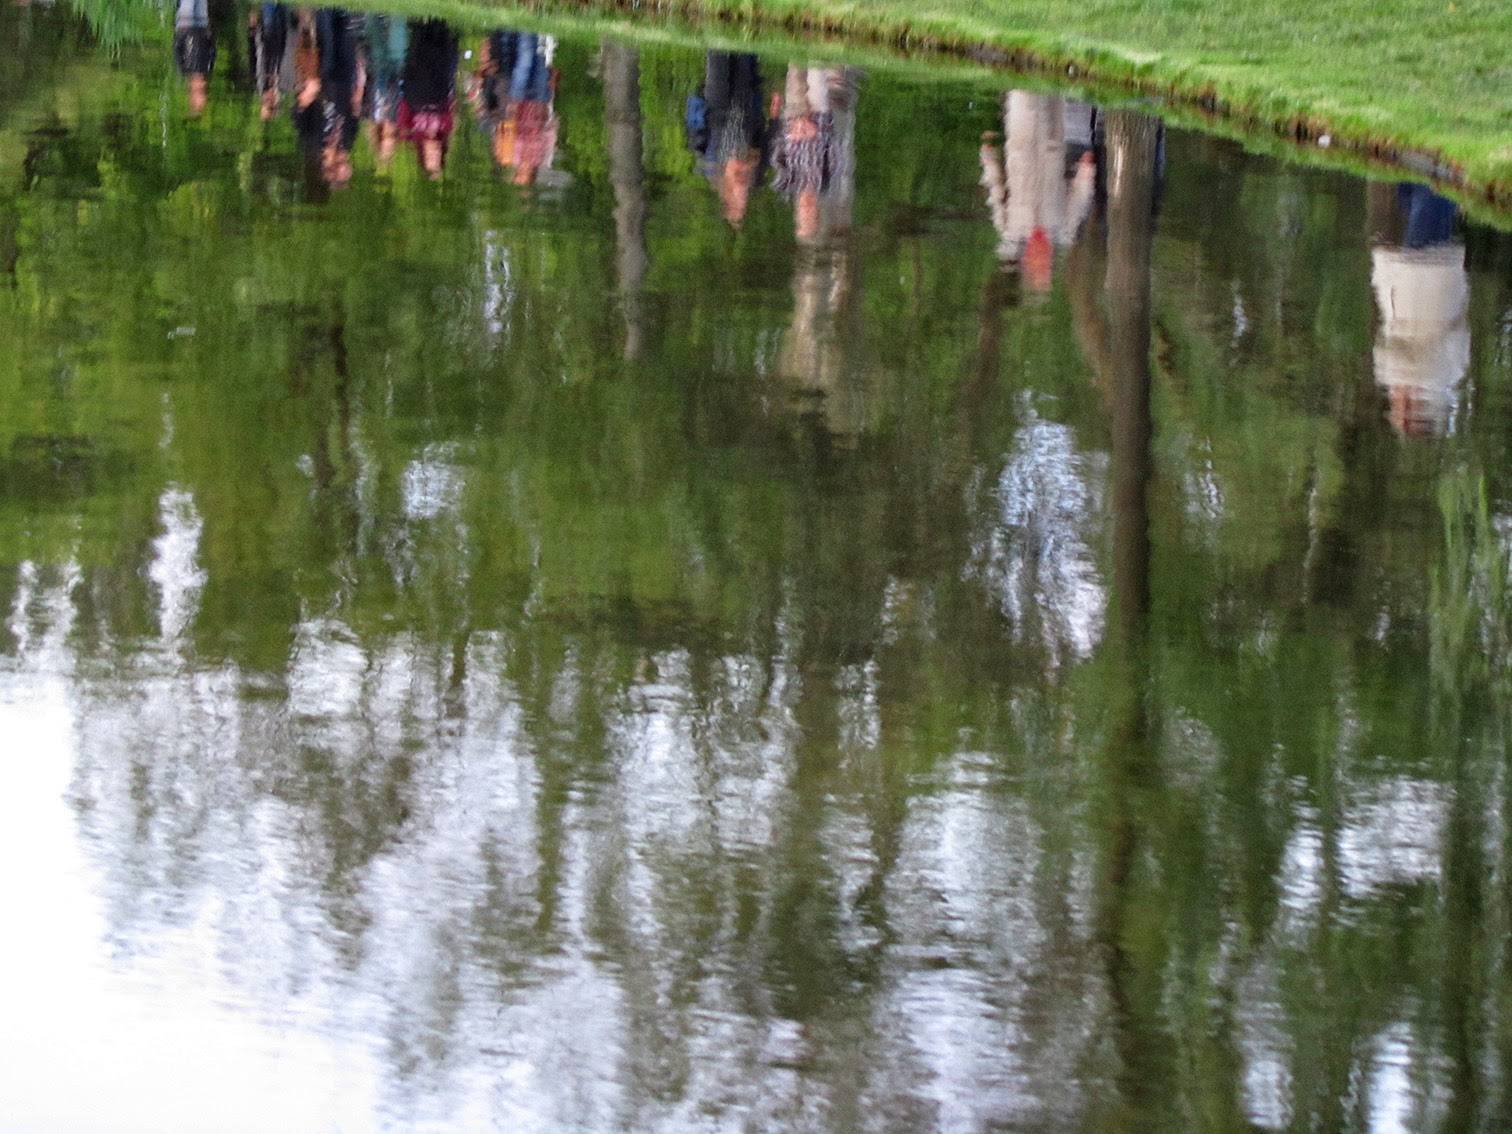 reflection of people in a pond